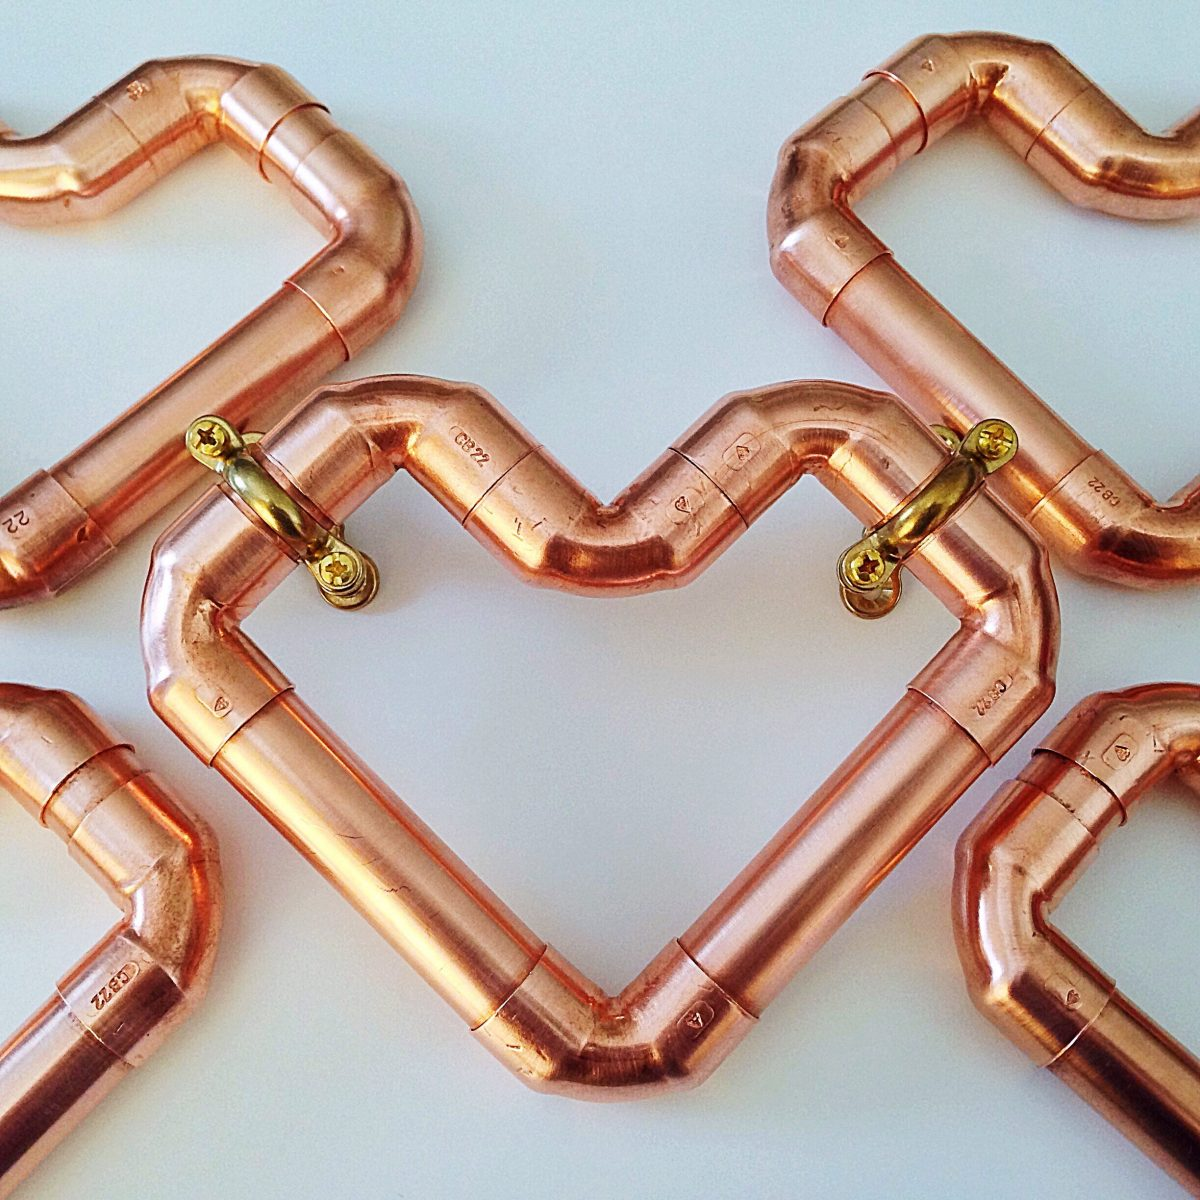 Our Plumbers Love What They Do!